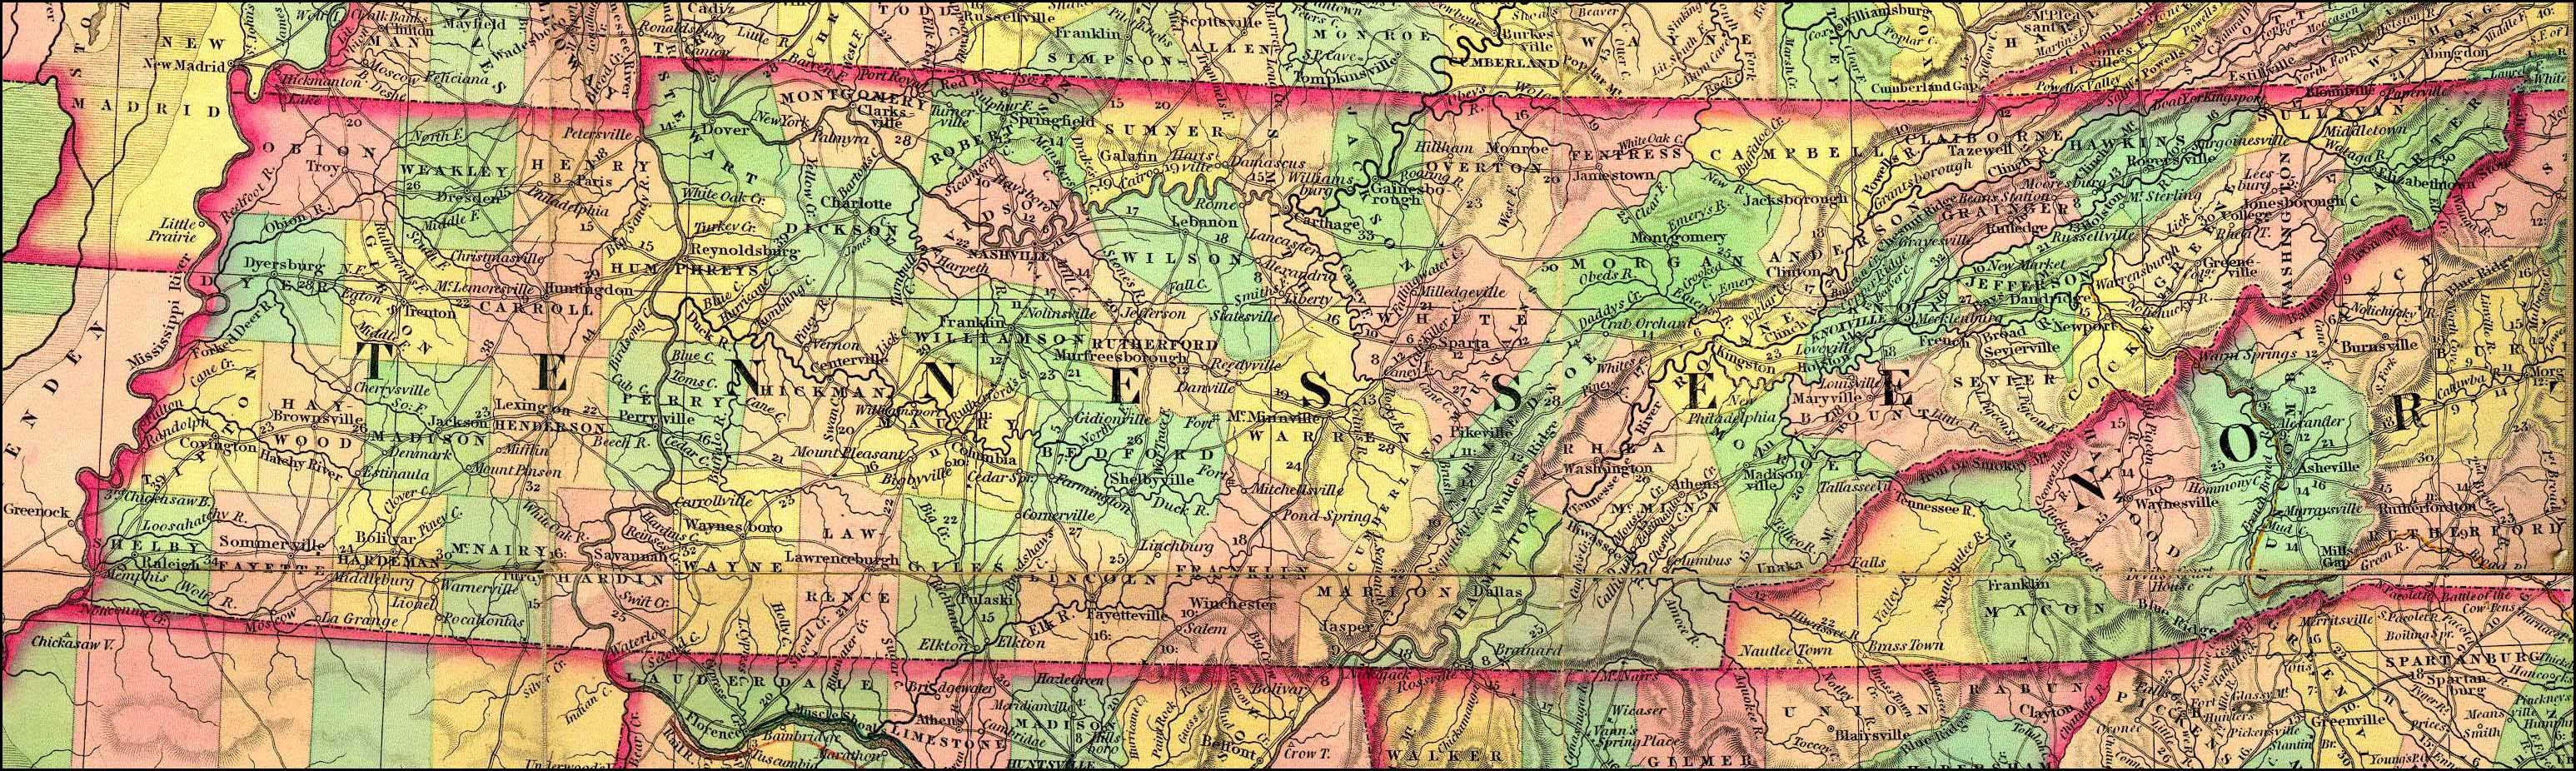 early bledsoe county tn maps | detailed tennessee map 1834 ...